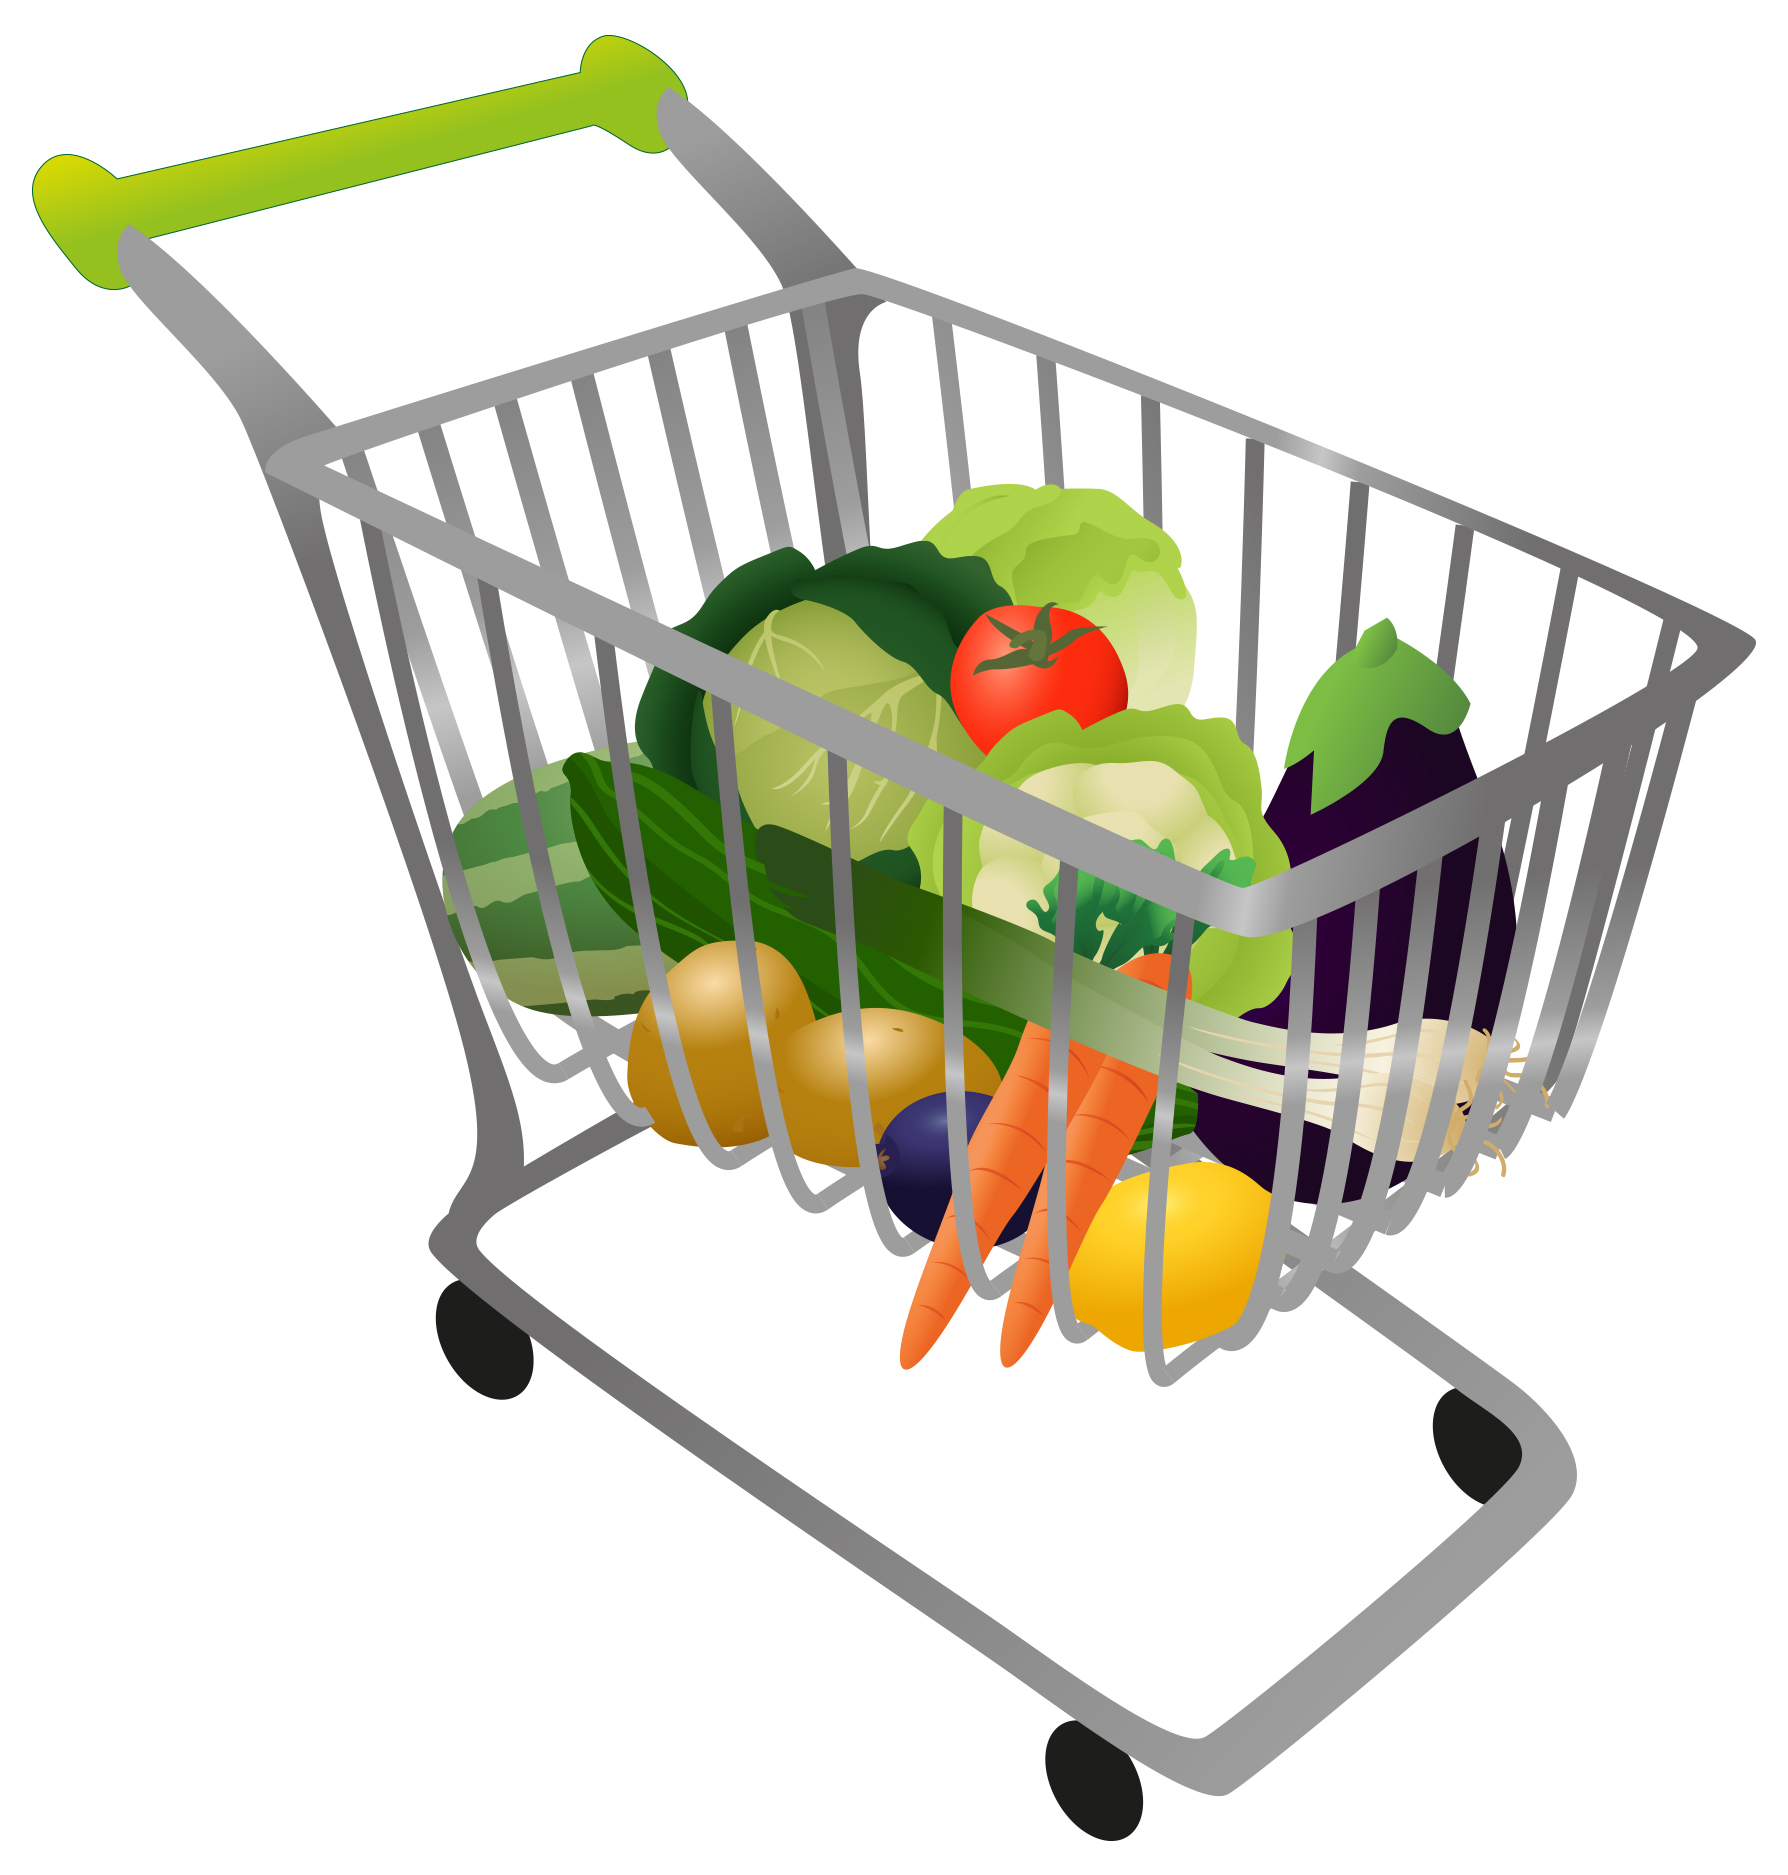 cart clipart at getdrawings com free for personal use cart clipart rh getdrawings com shopkins shopping cart clipart shopping cart clipart animation free